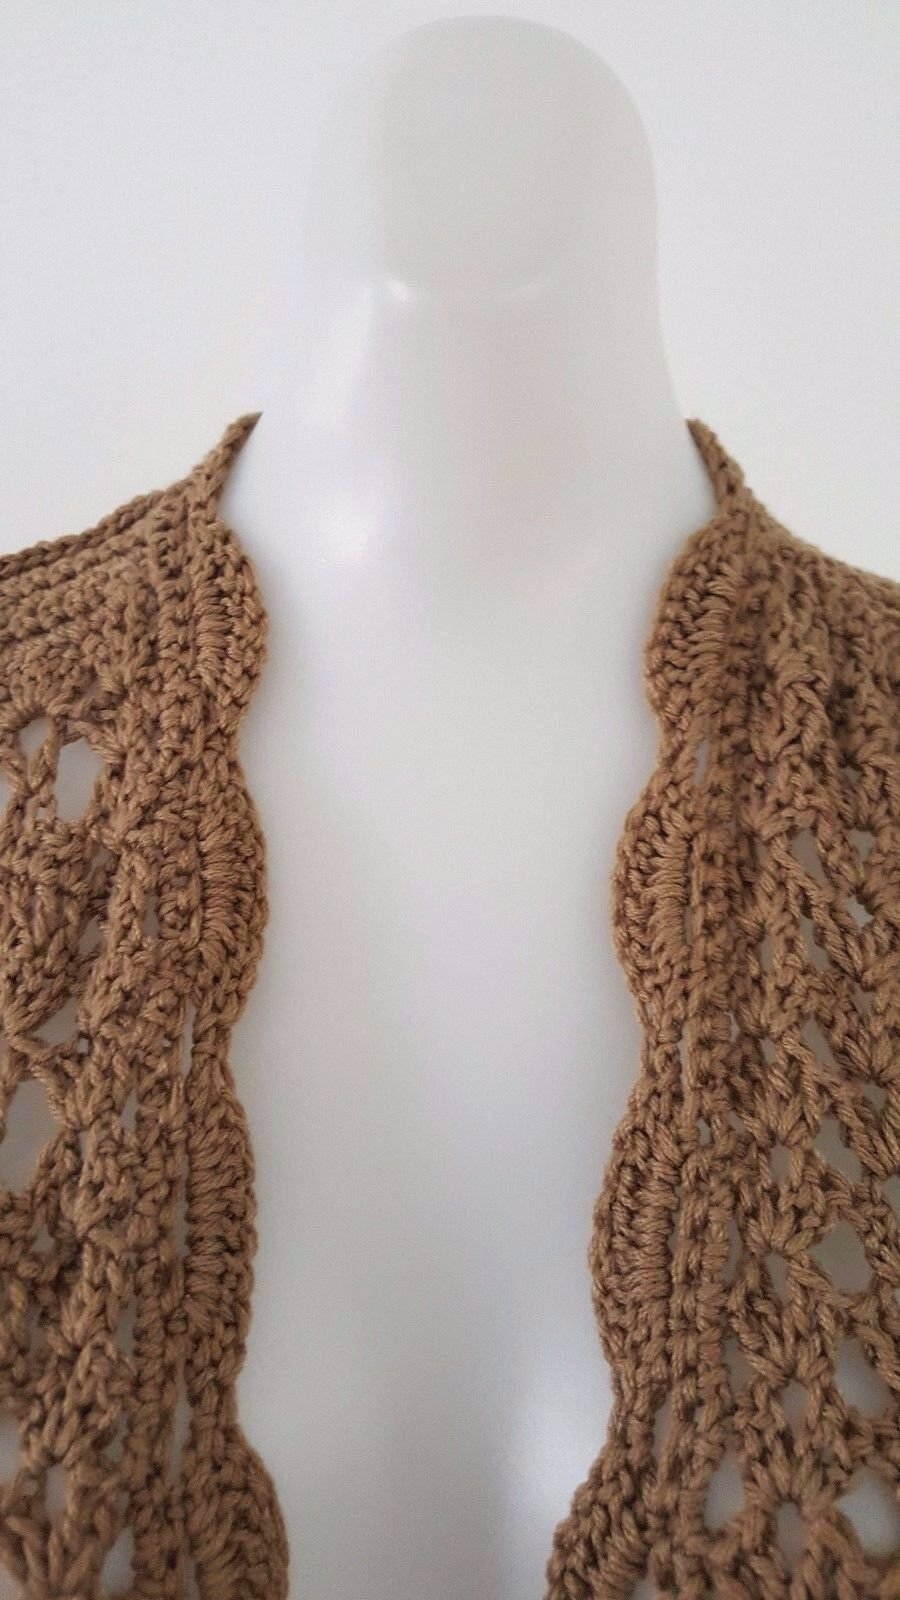 NEW GALINA HANDMADE WOMEN'S BEIGE CROCHET OPEN CARDIGAN VEST VEST VEST KNIT SLEEVELESS  M c39e1b